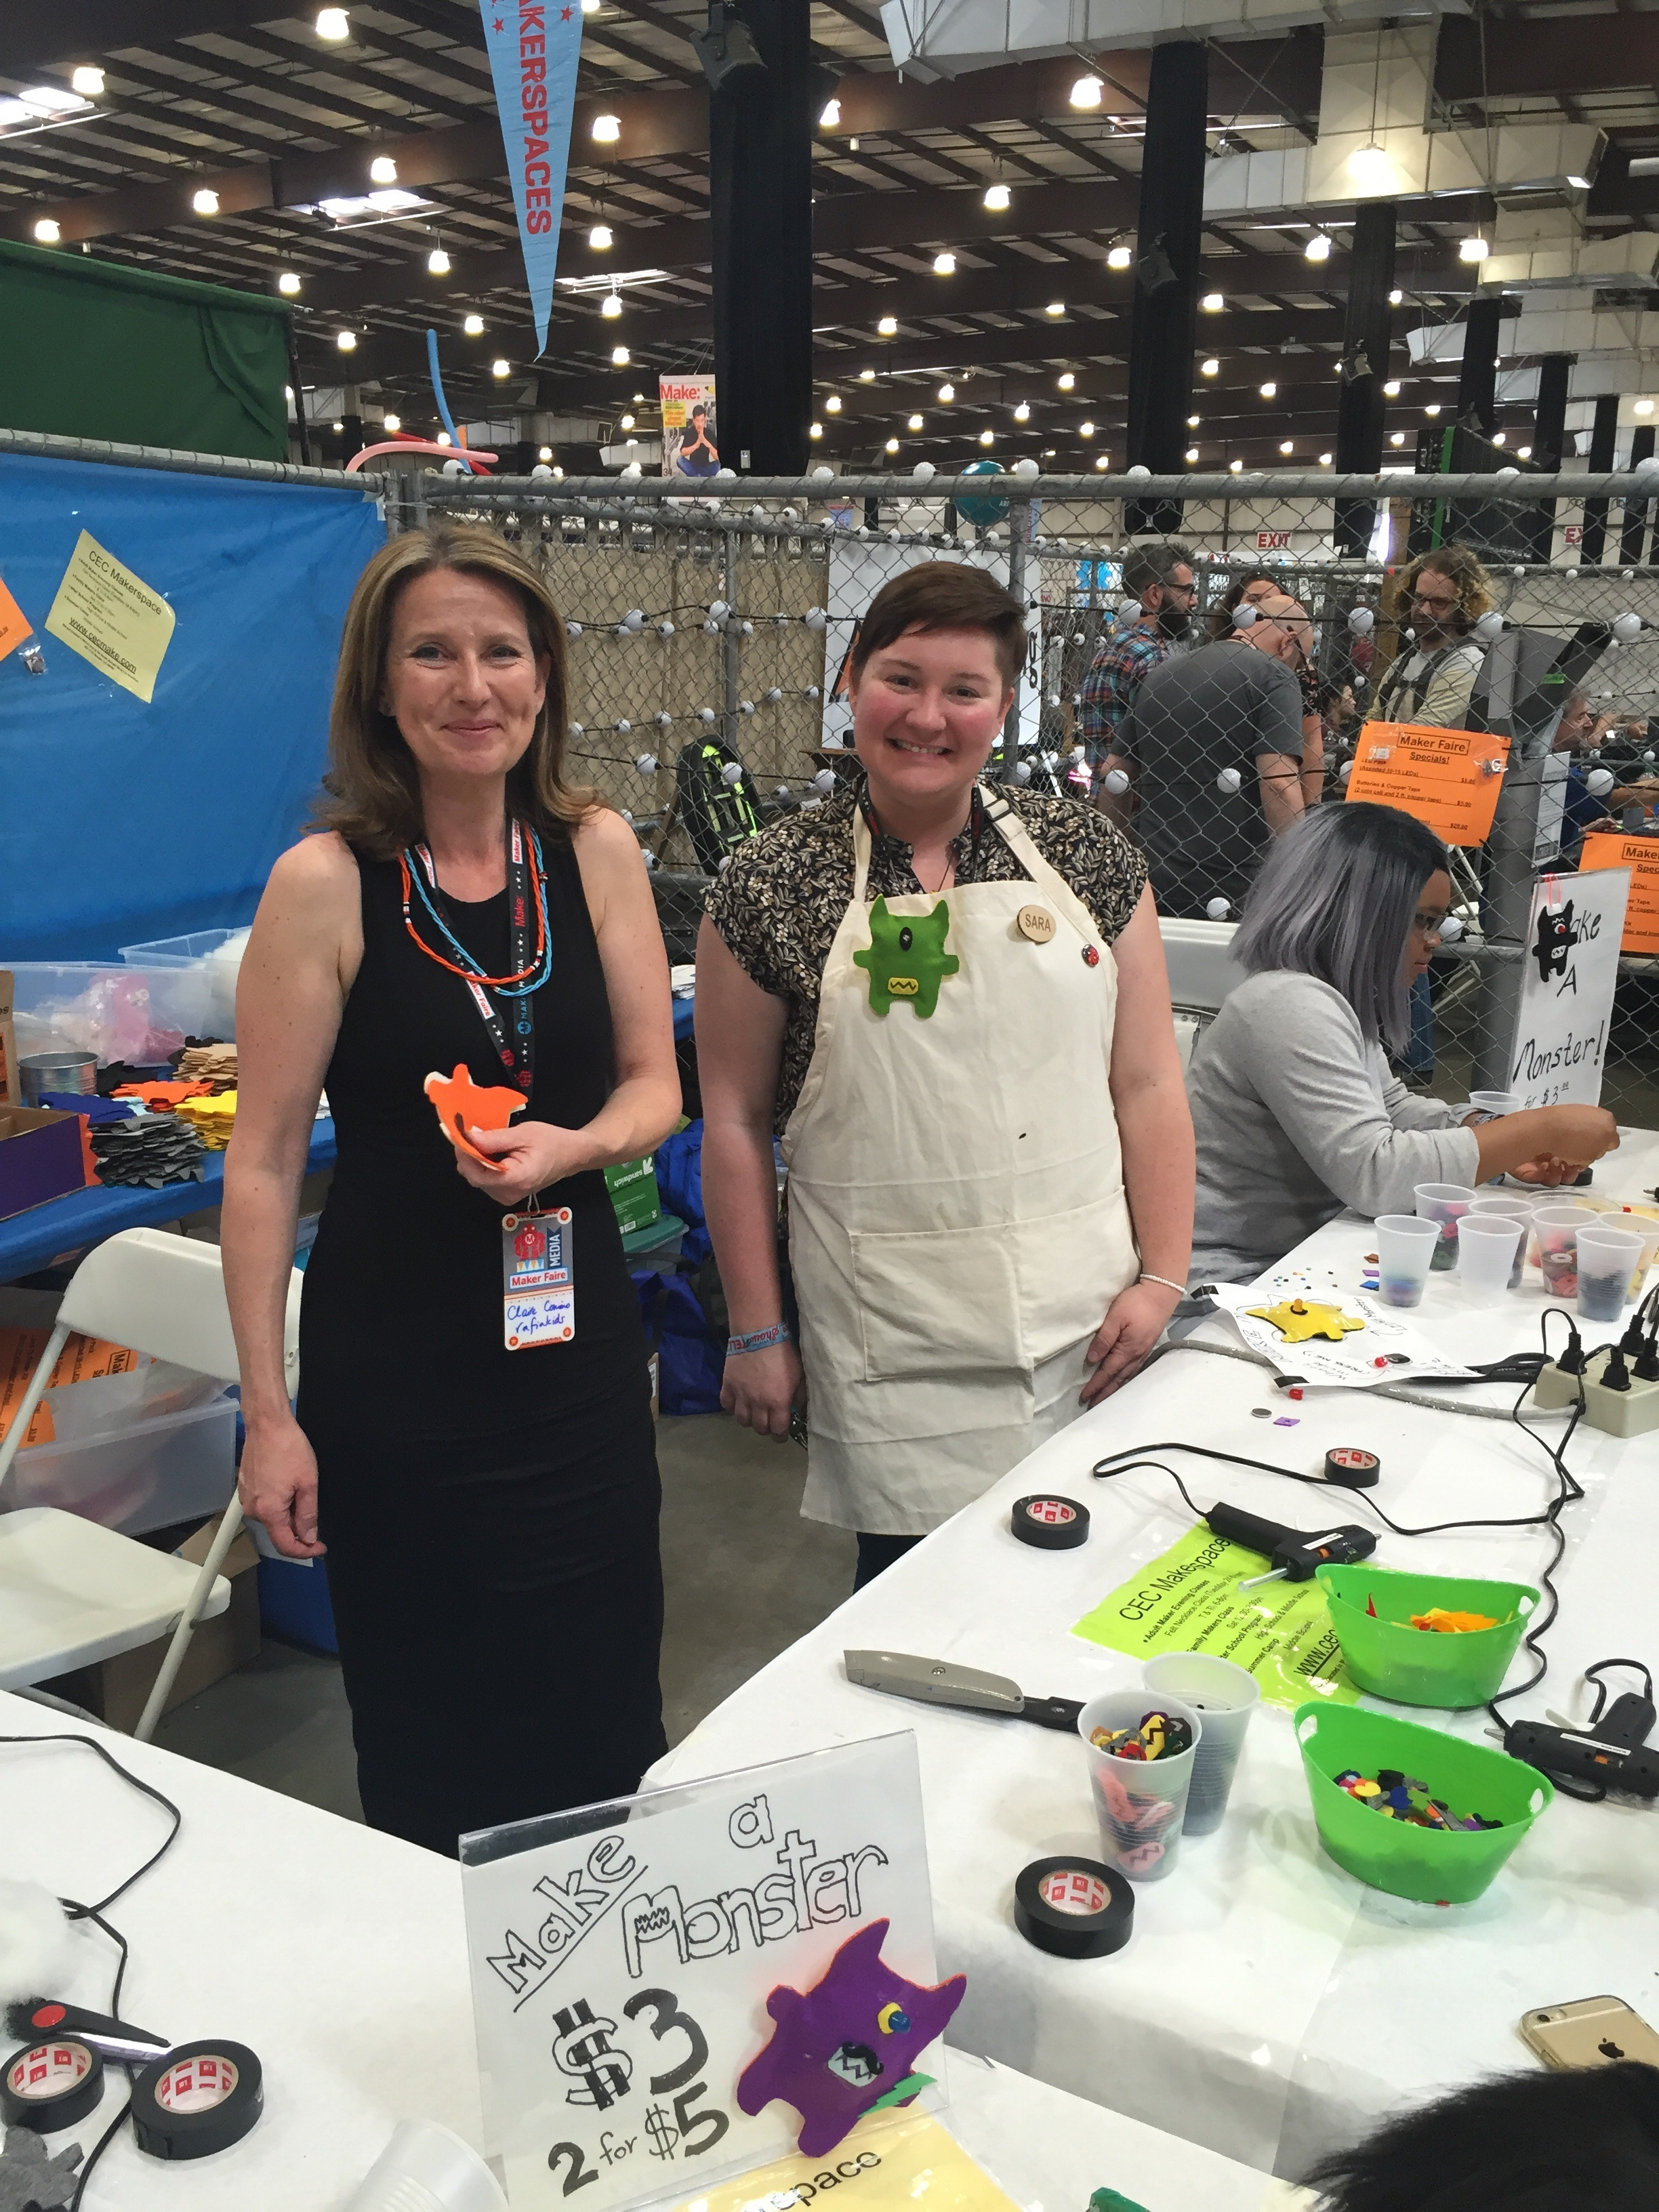 Claire with community makerspace manager Sara Bolduc, set for a session helping kids of all ages make mini led monsters. CEC makerspace is a community makerspace in Novato, Marin, California